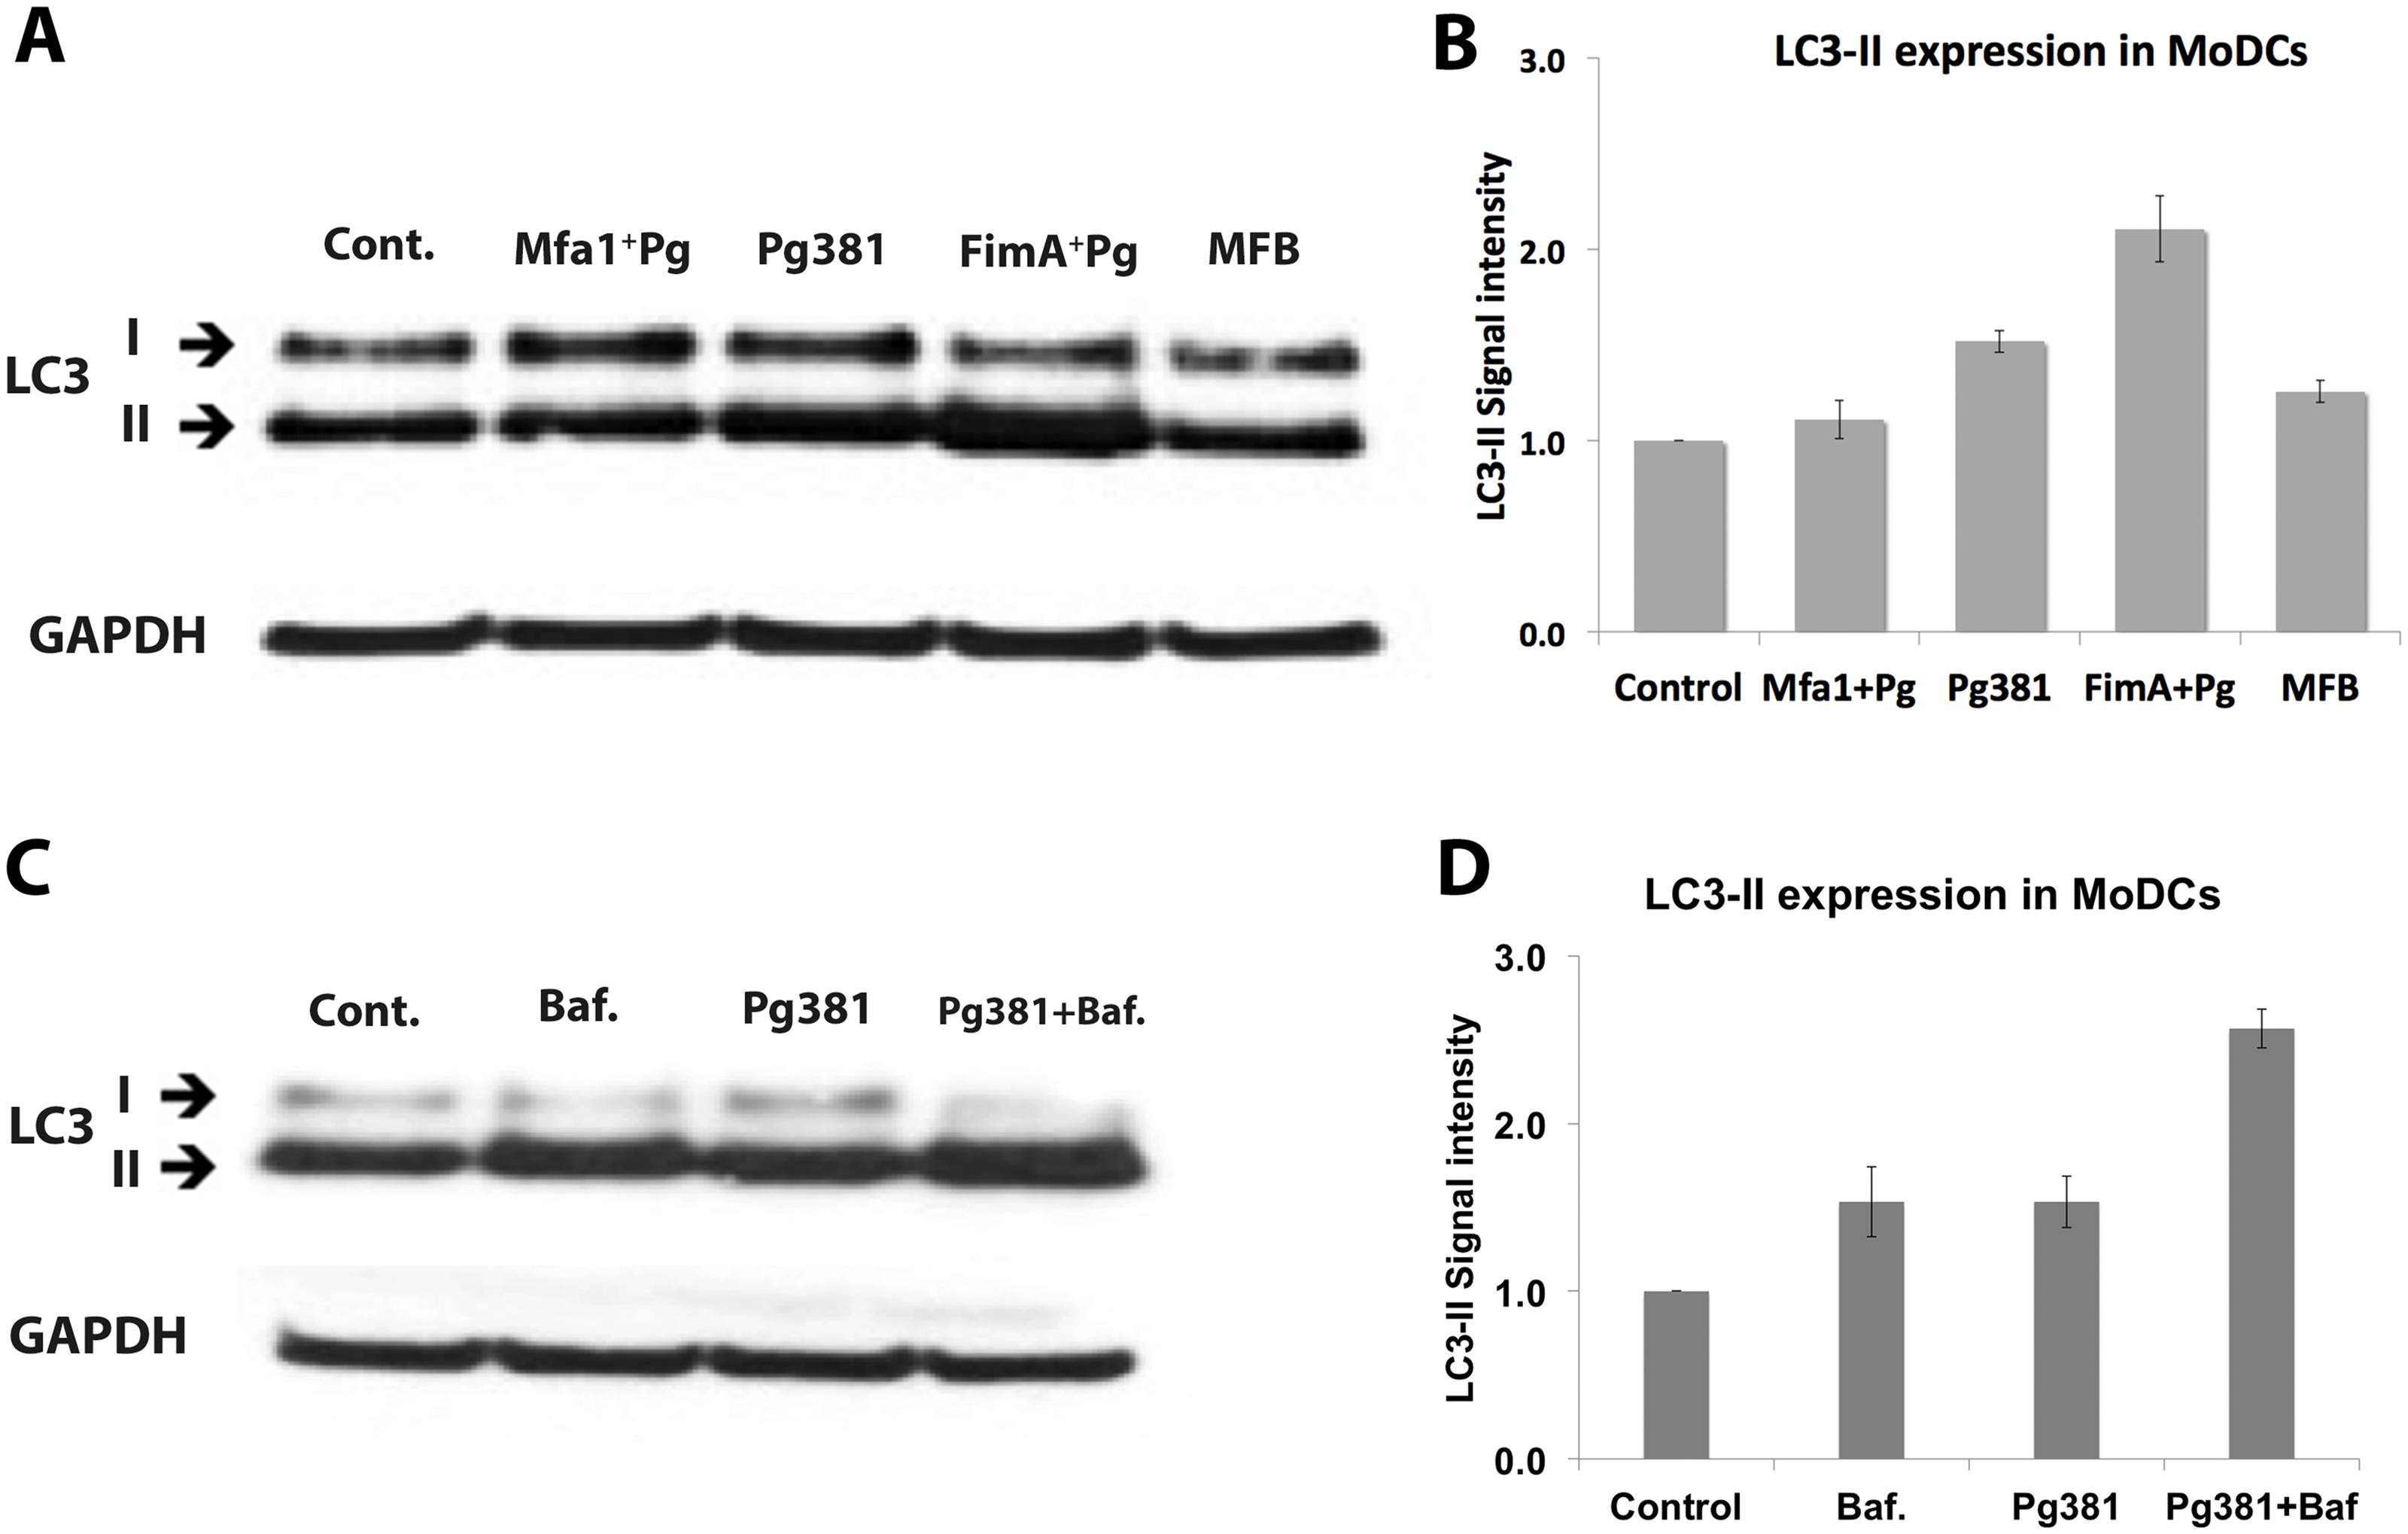 Low LC3-II expression in MoDCs infected with <i>P. gingivalis</i> expressing Mfa1.